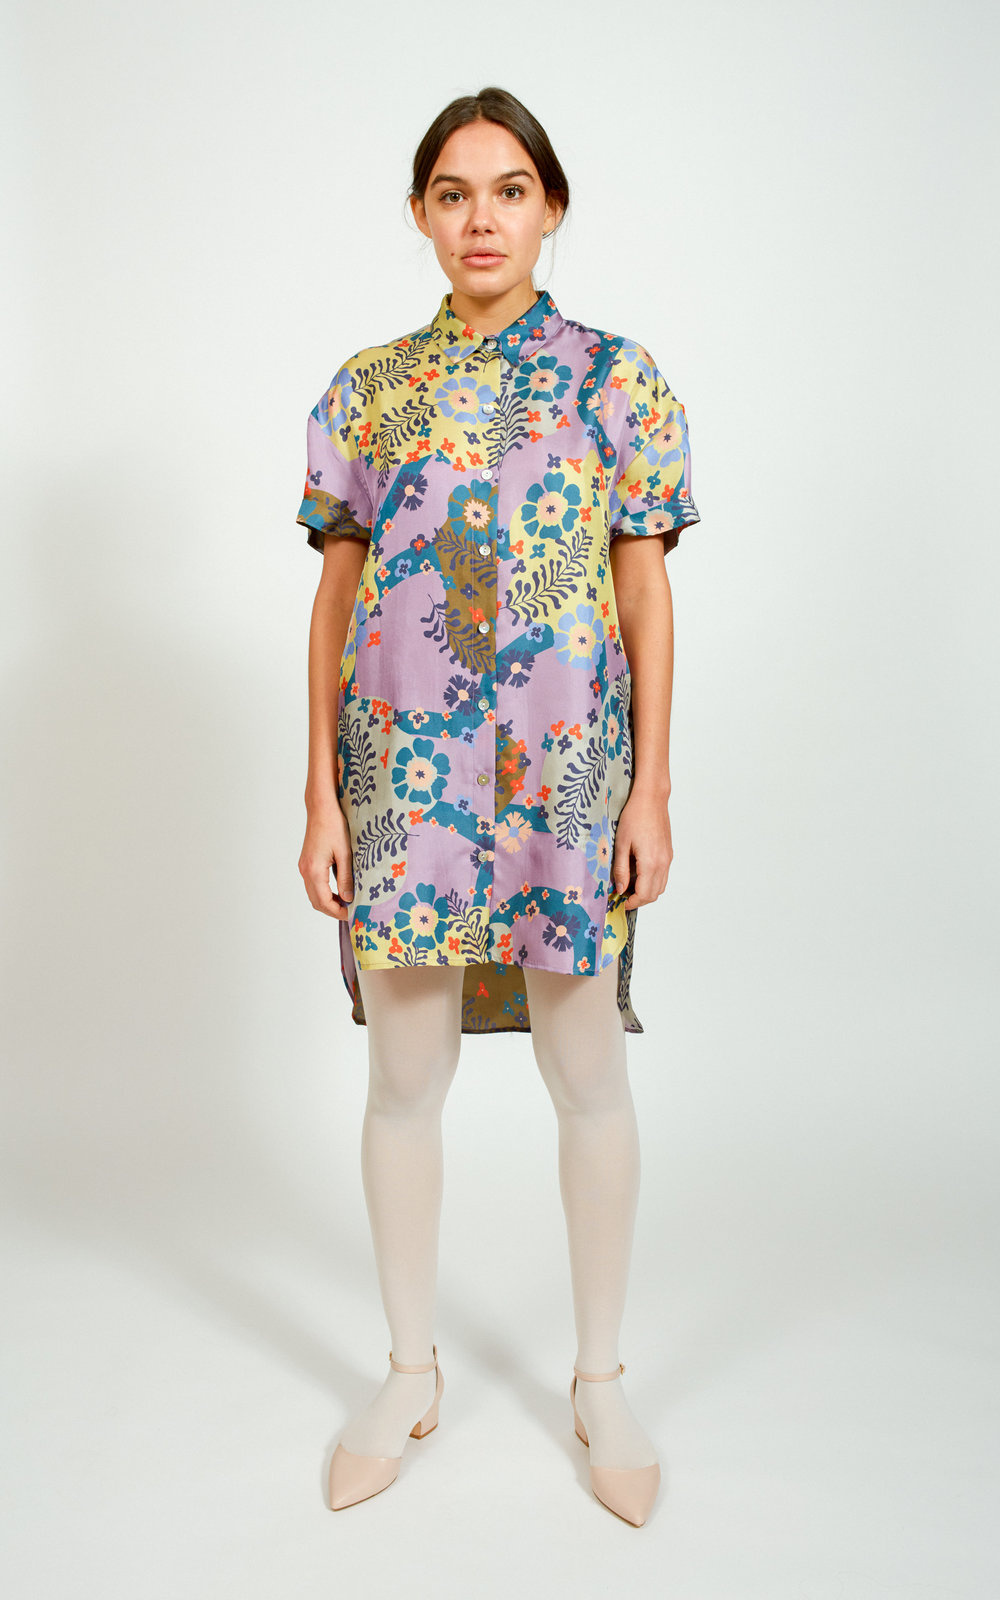 Apalma - Cata Shirt Dress / $119.00With the great tailoring and cool print, this silk shirtdress is perfect to stay cool while still looking work or happy hour ready.